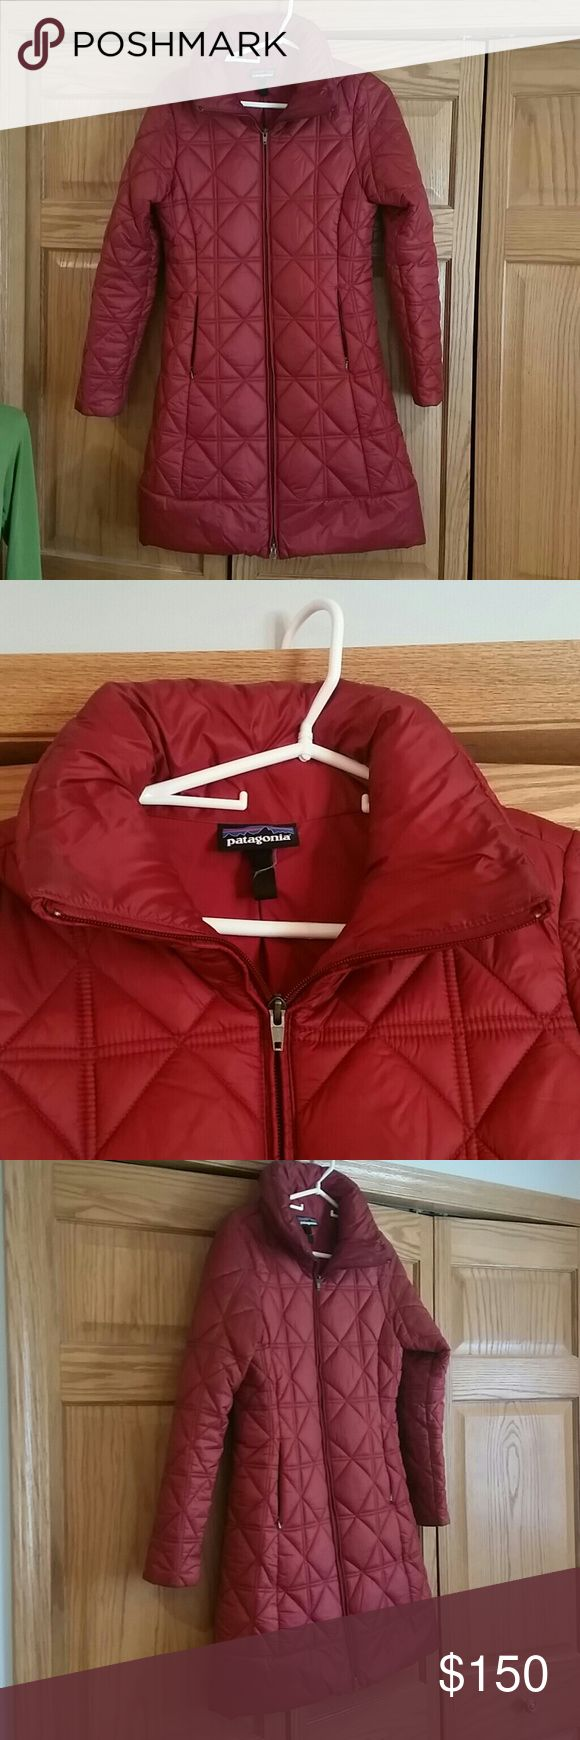 Red Patagonia Parka size Small Amazing darker red parka by Patagonia. The tag has been cut off but I am very sure it is a Women's Small. The quilted pattern is great, and gives it a nice flair. All zippers work, has a cool pocket for things on the inside chest of the coat, too. 2 outside zippers for hands or a phone, too. No rips or flaws other than a little wear on the collar from gentle use. I would be willing to trade this gem for a Medium sized Patagonia parka or a Nano Puff. :)…